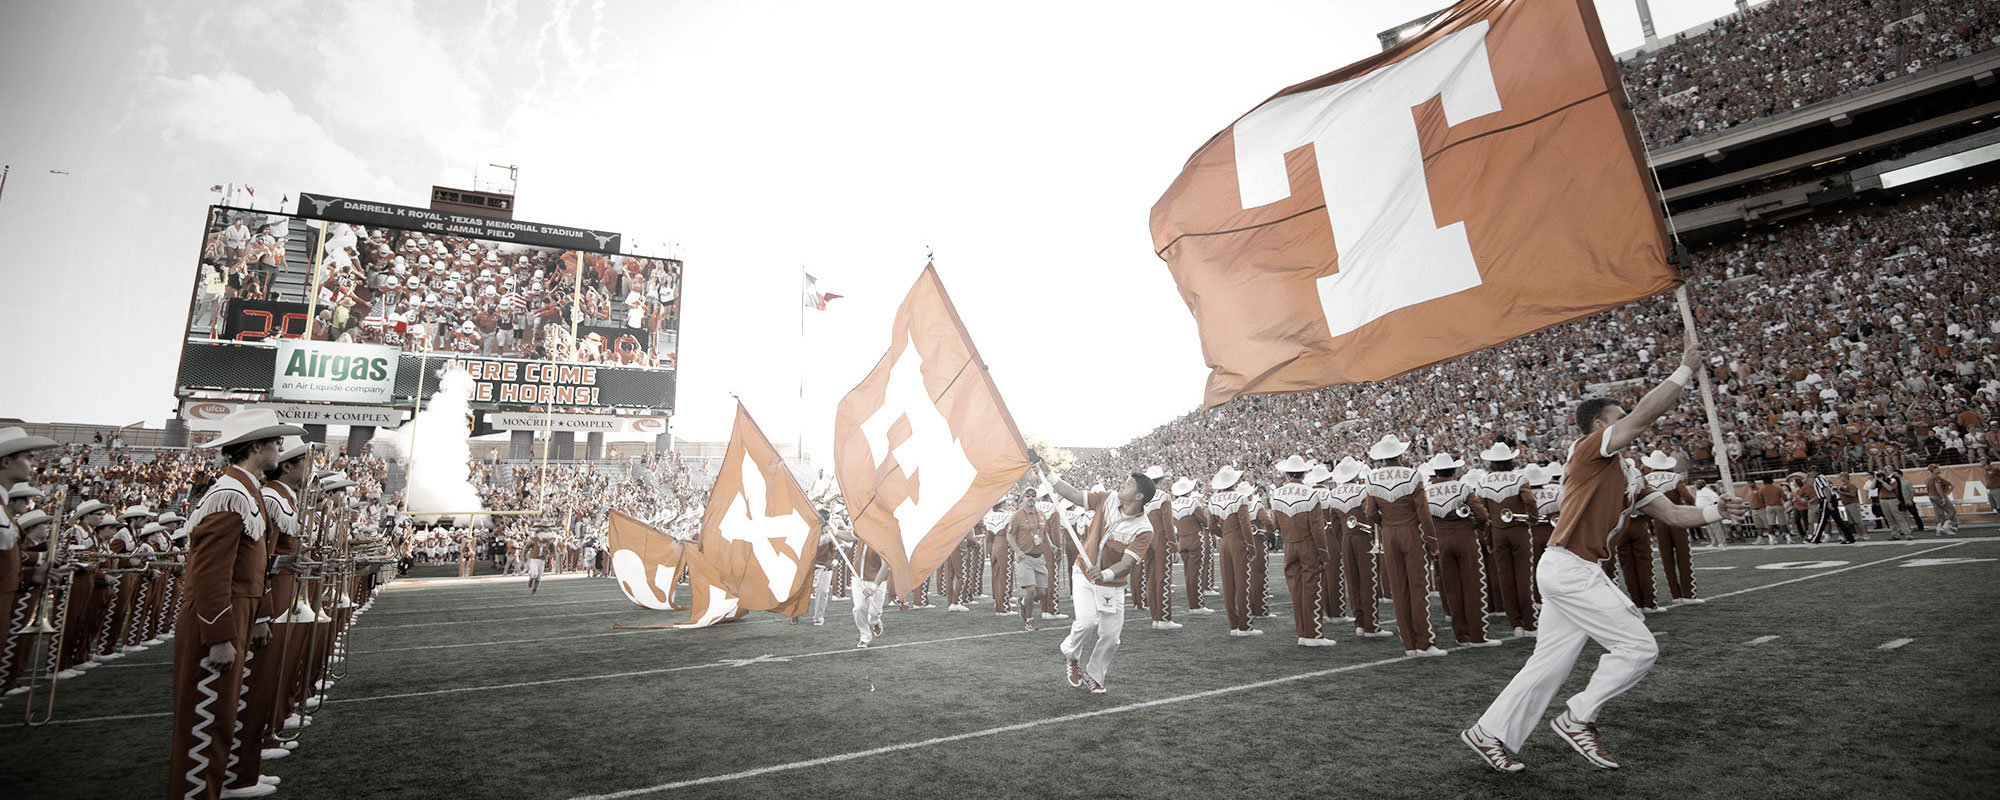 university of texas football schedule 2020